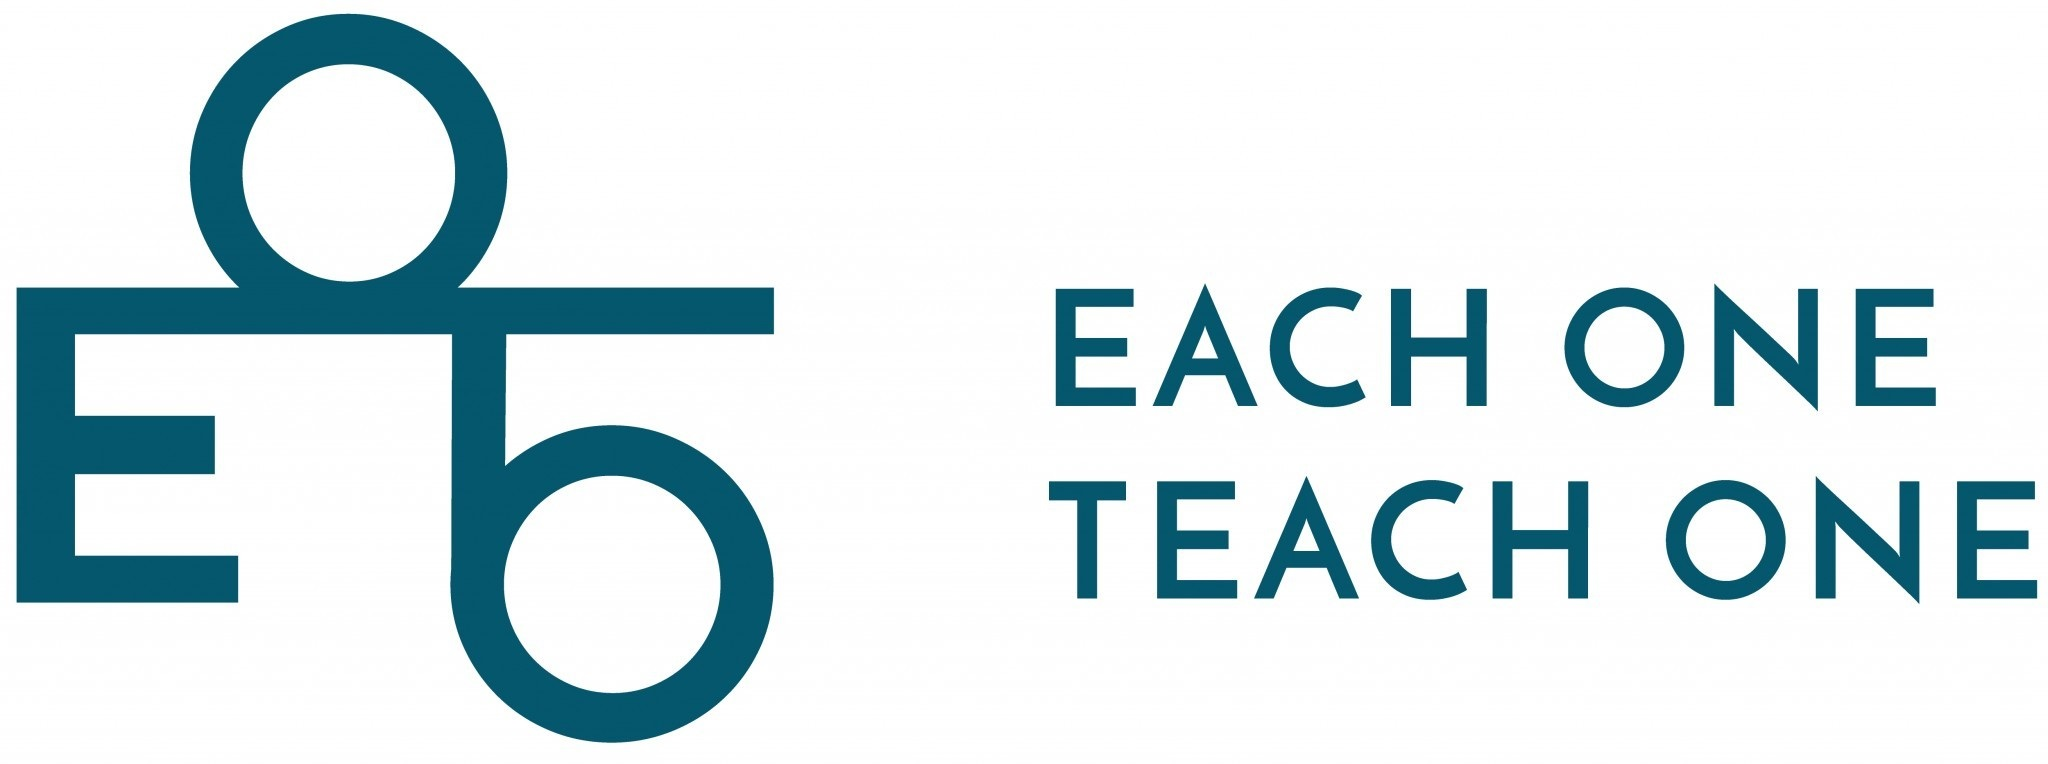 Logo Each One Teach One (EOTO)